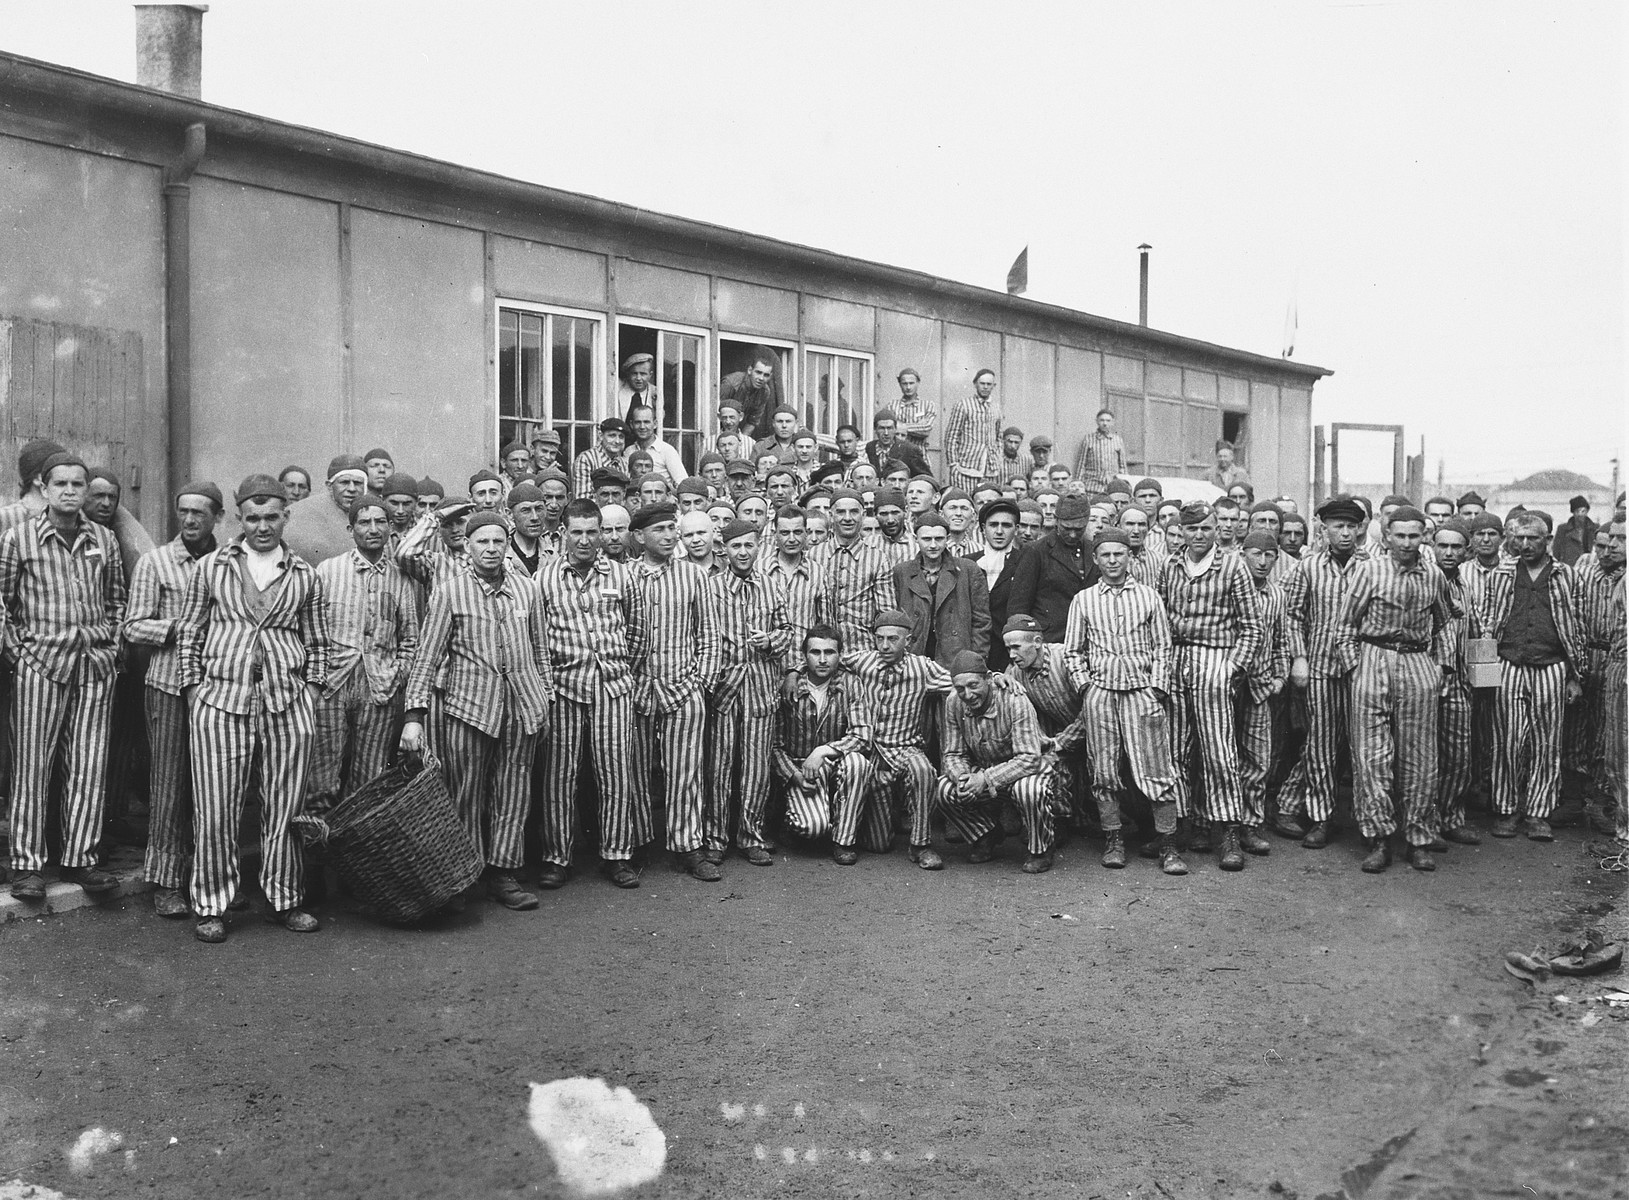 Group portrait of survivors standing in front of a barrack in Dachau after liberation.